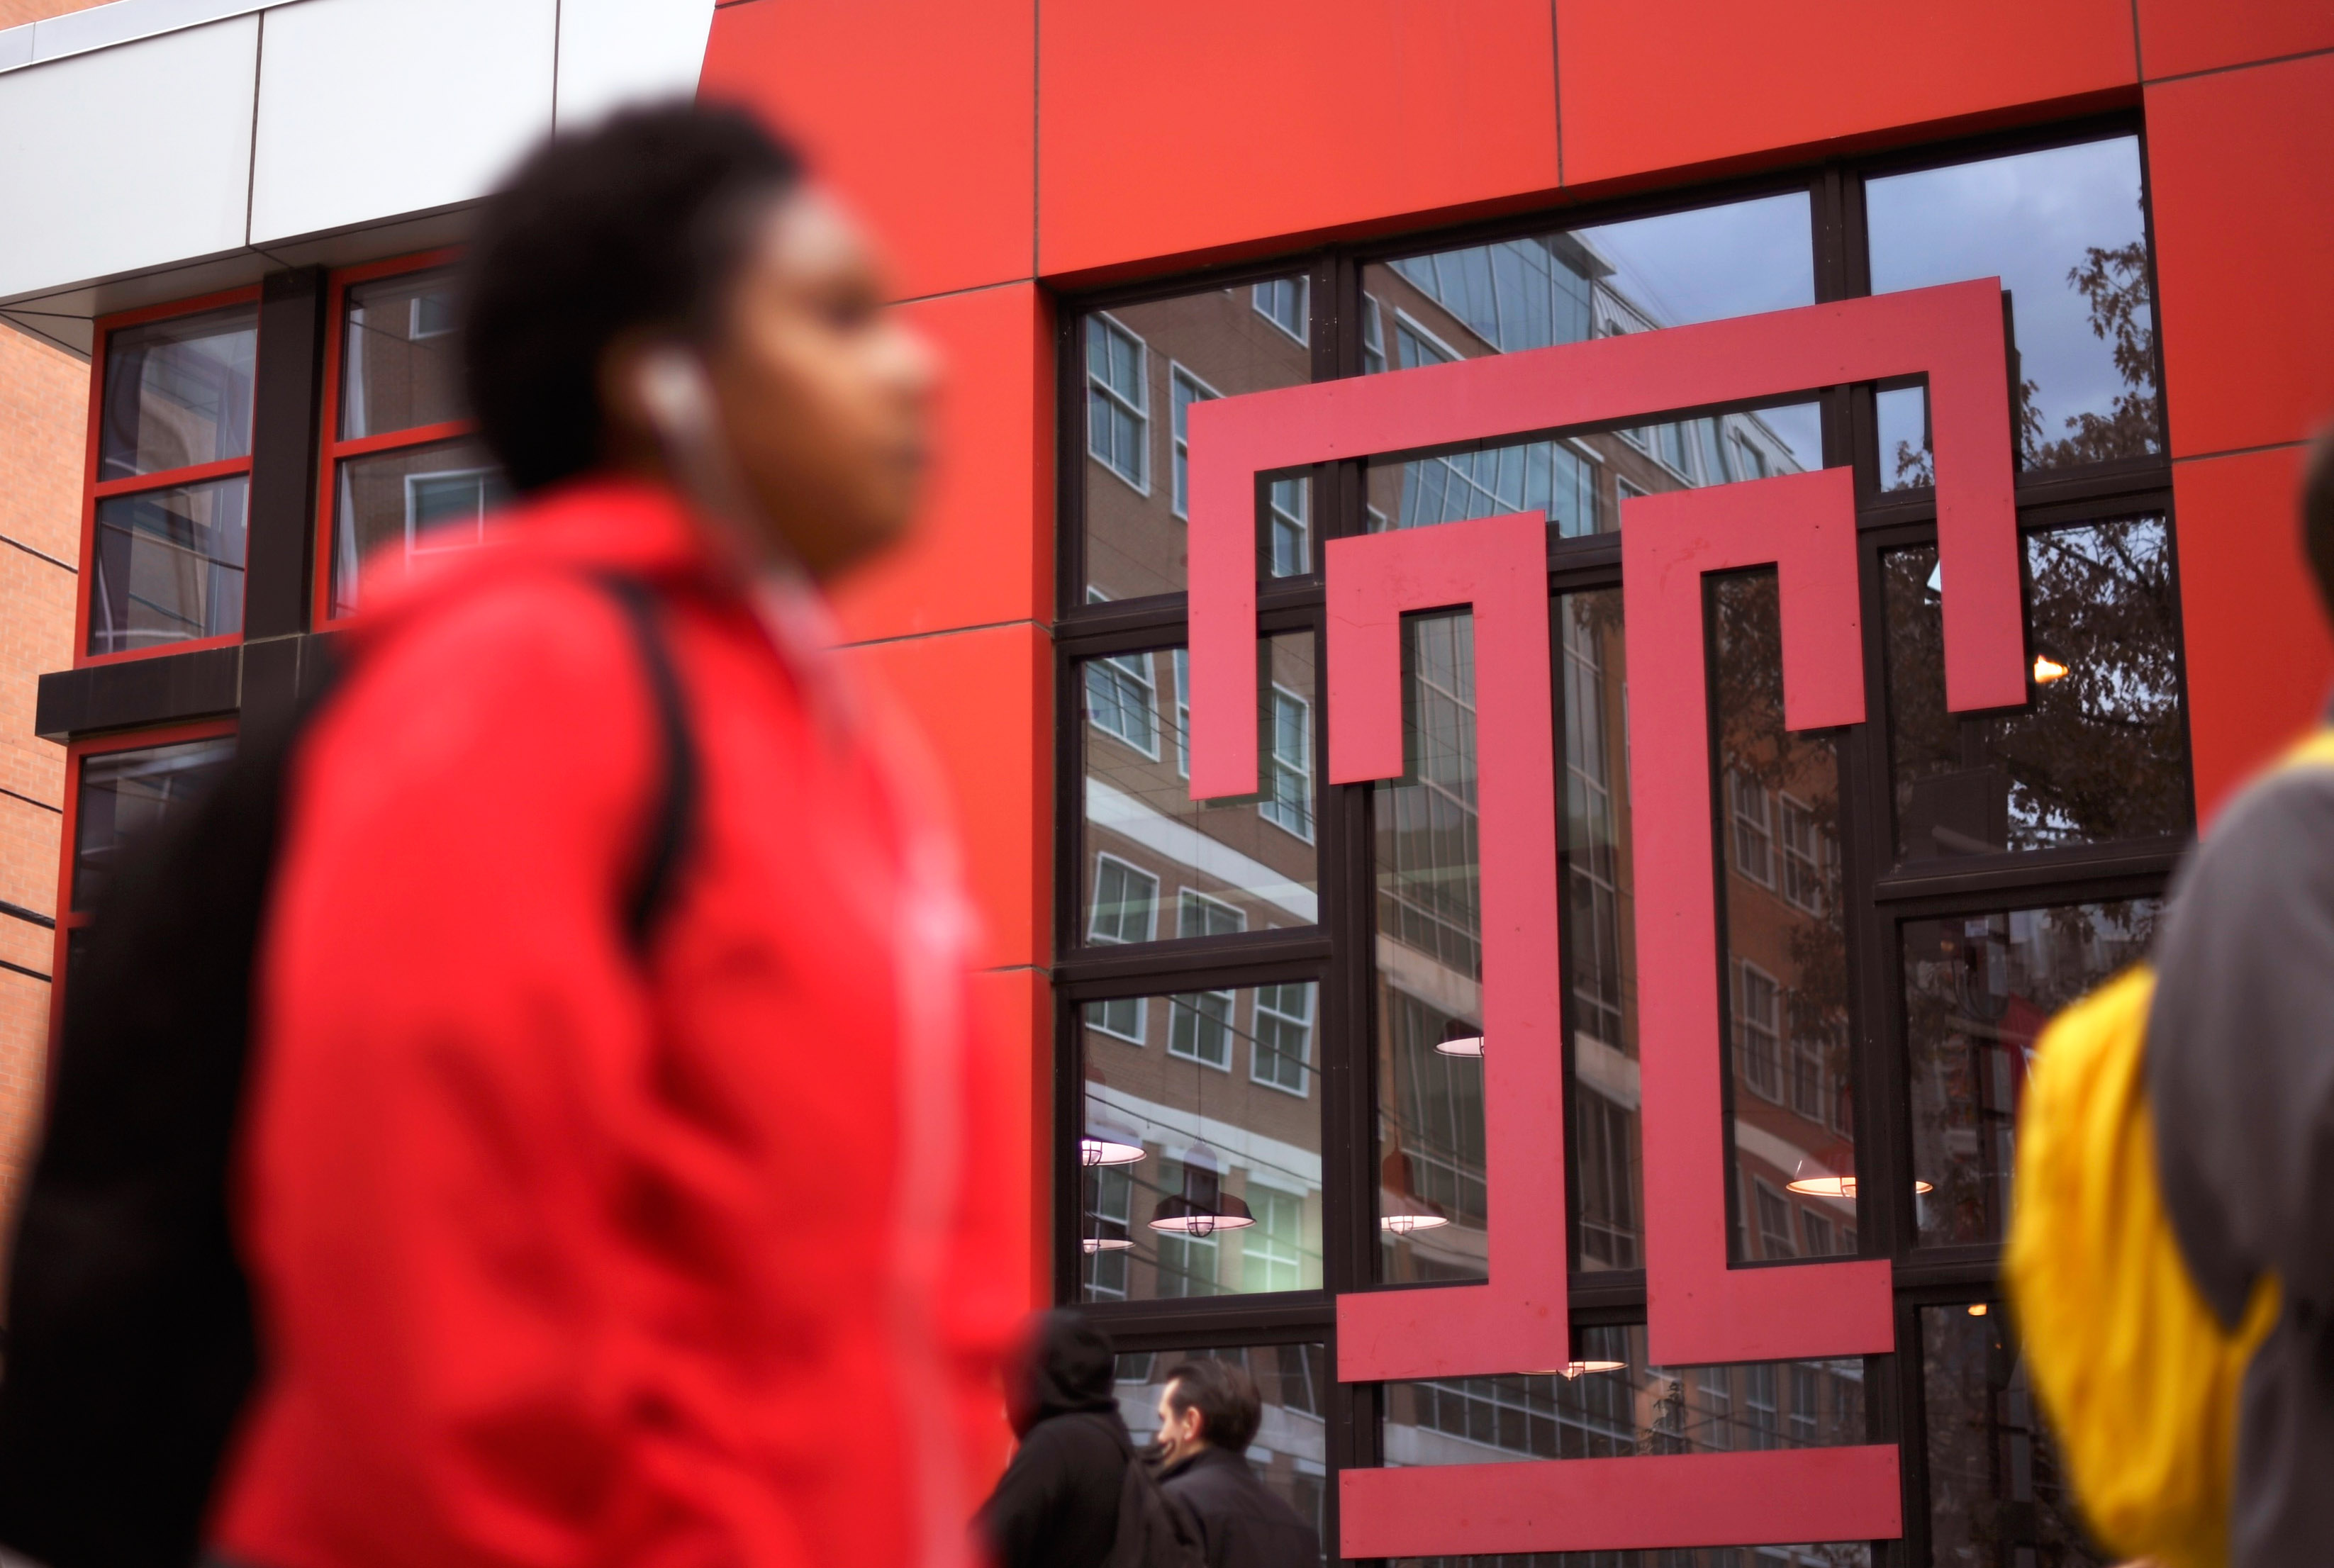 Students walk through the campus of Temple University, which has an enrollment of more than a 38,000 and offers 464 academic degree programs, in Philadelphia, Pennsylvania, U.S. on December 1, 2016. (COLLEGE-CHARITIES/ REUTERS/Mark Makela)